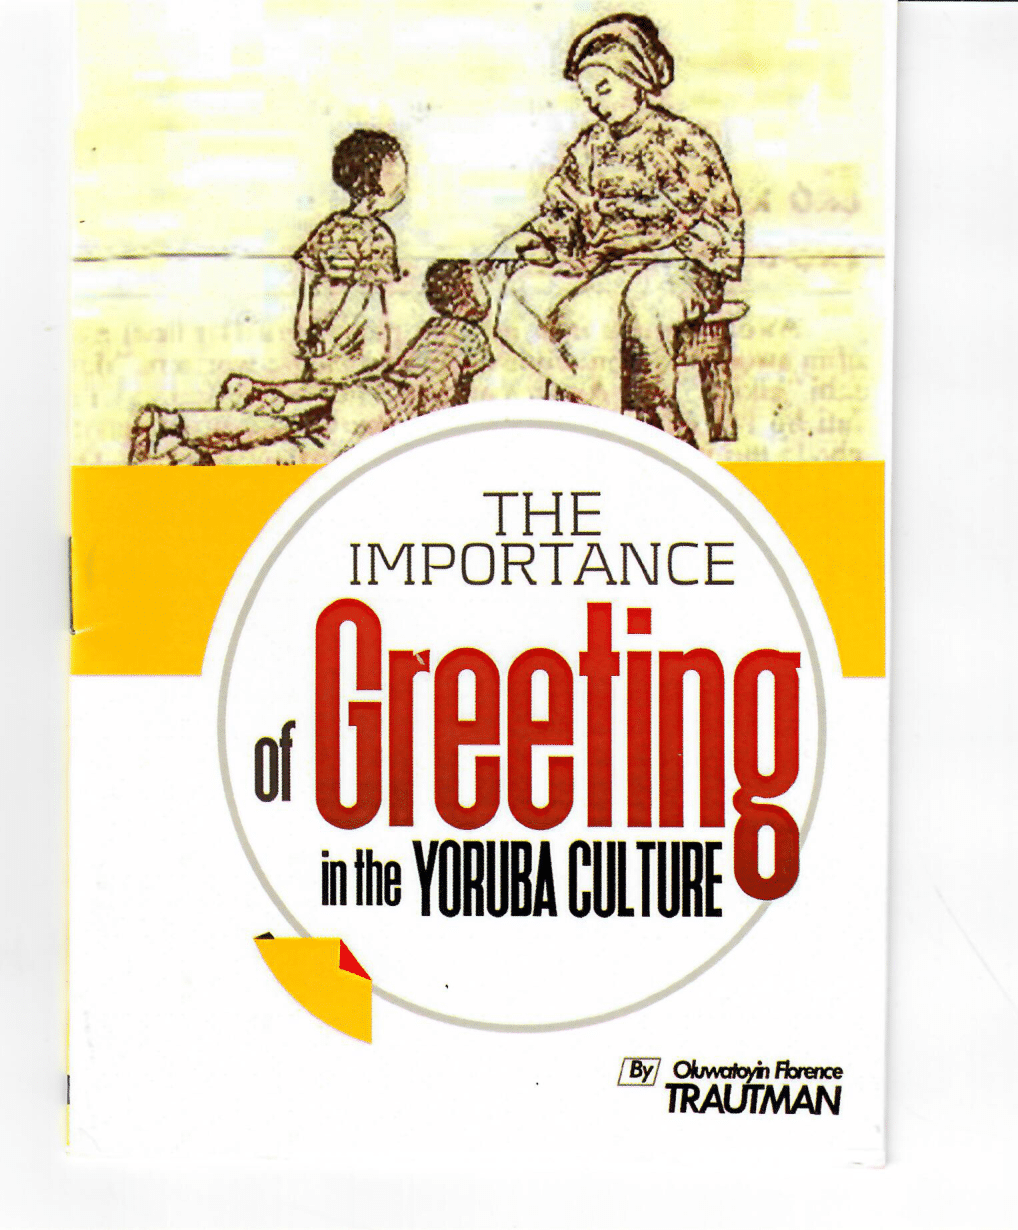 A book on On the Importance of Greeting in Yorube Language